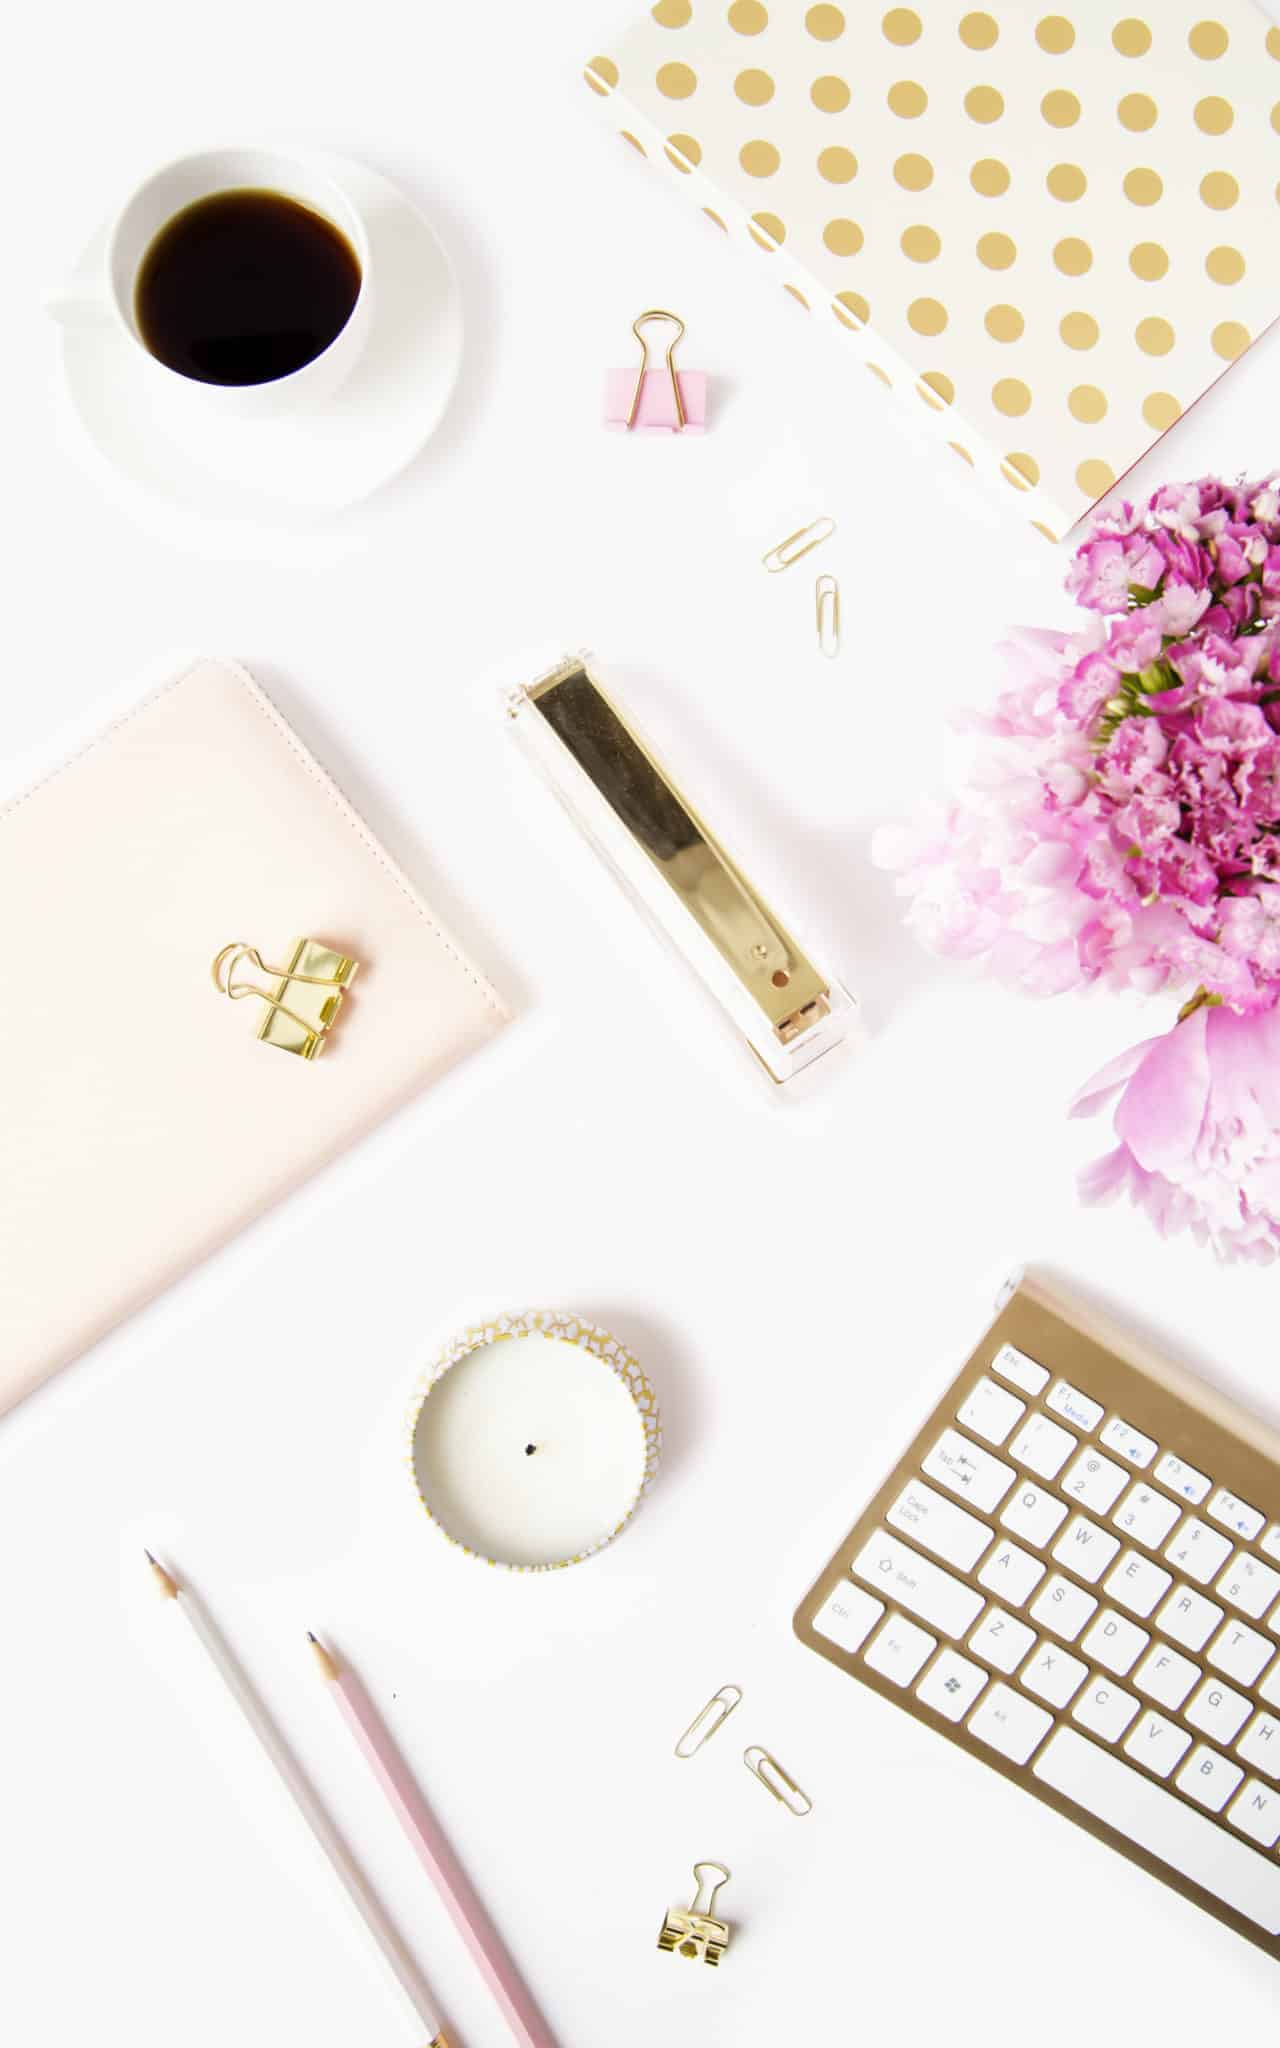 How do you prepare for your first client meeting as a Virtual Assistant? #virtualassistant